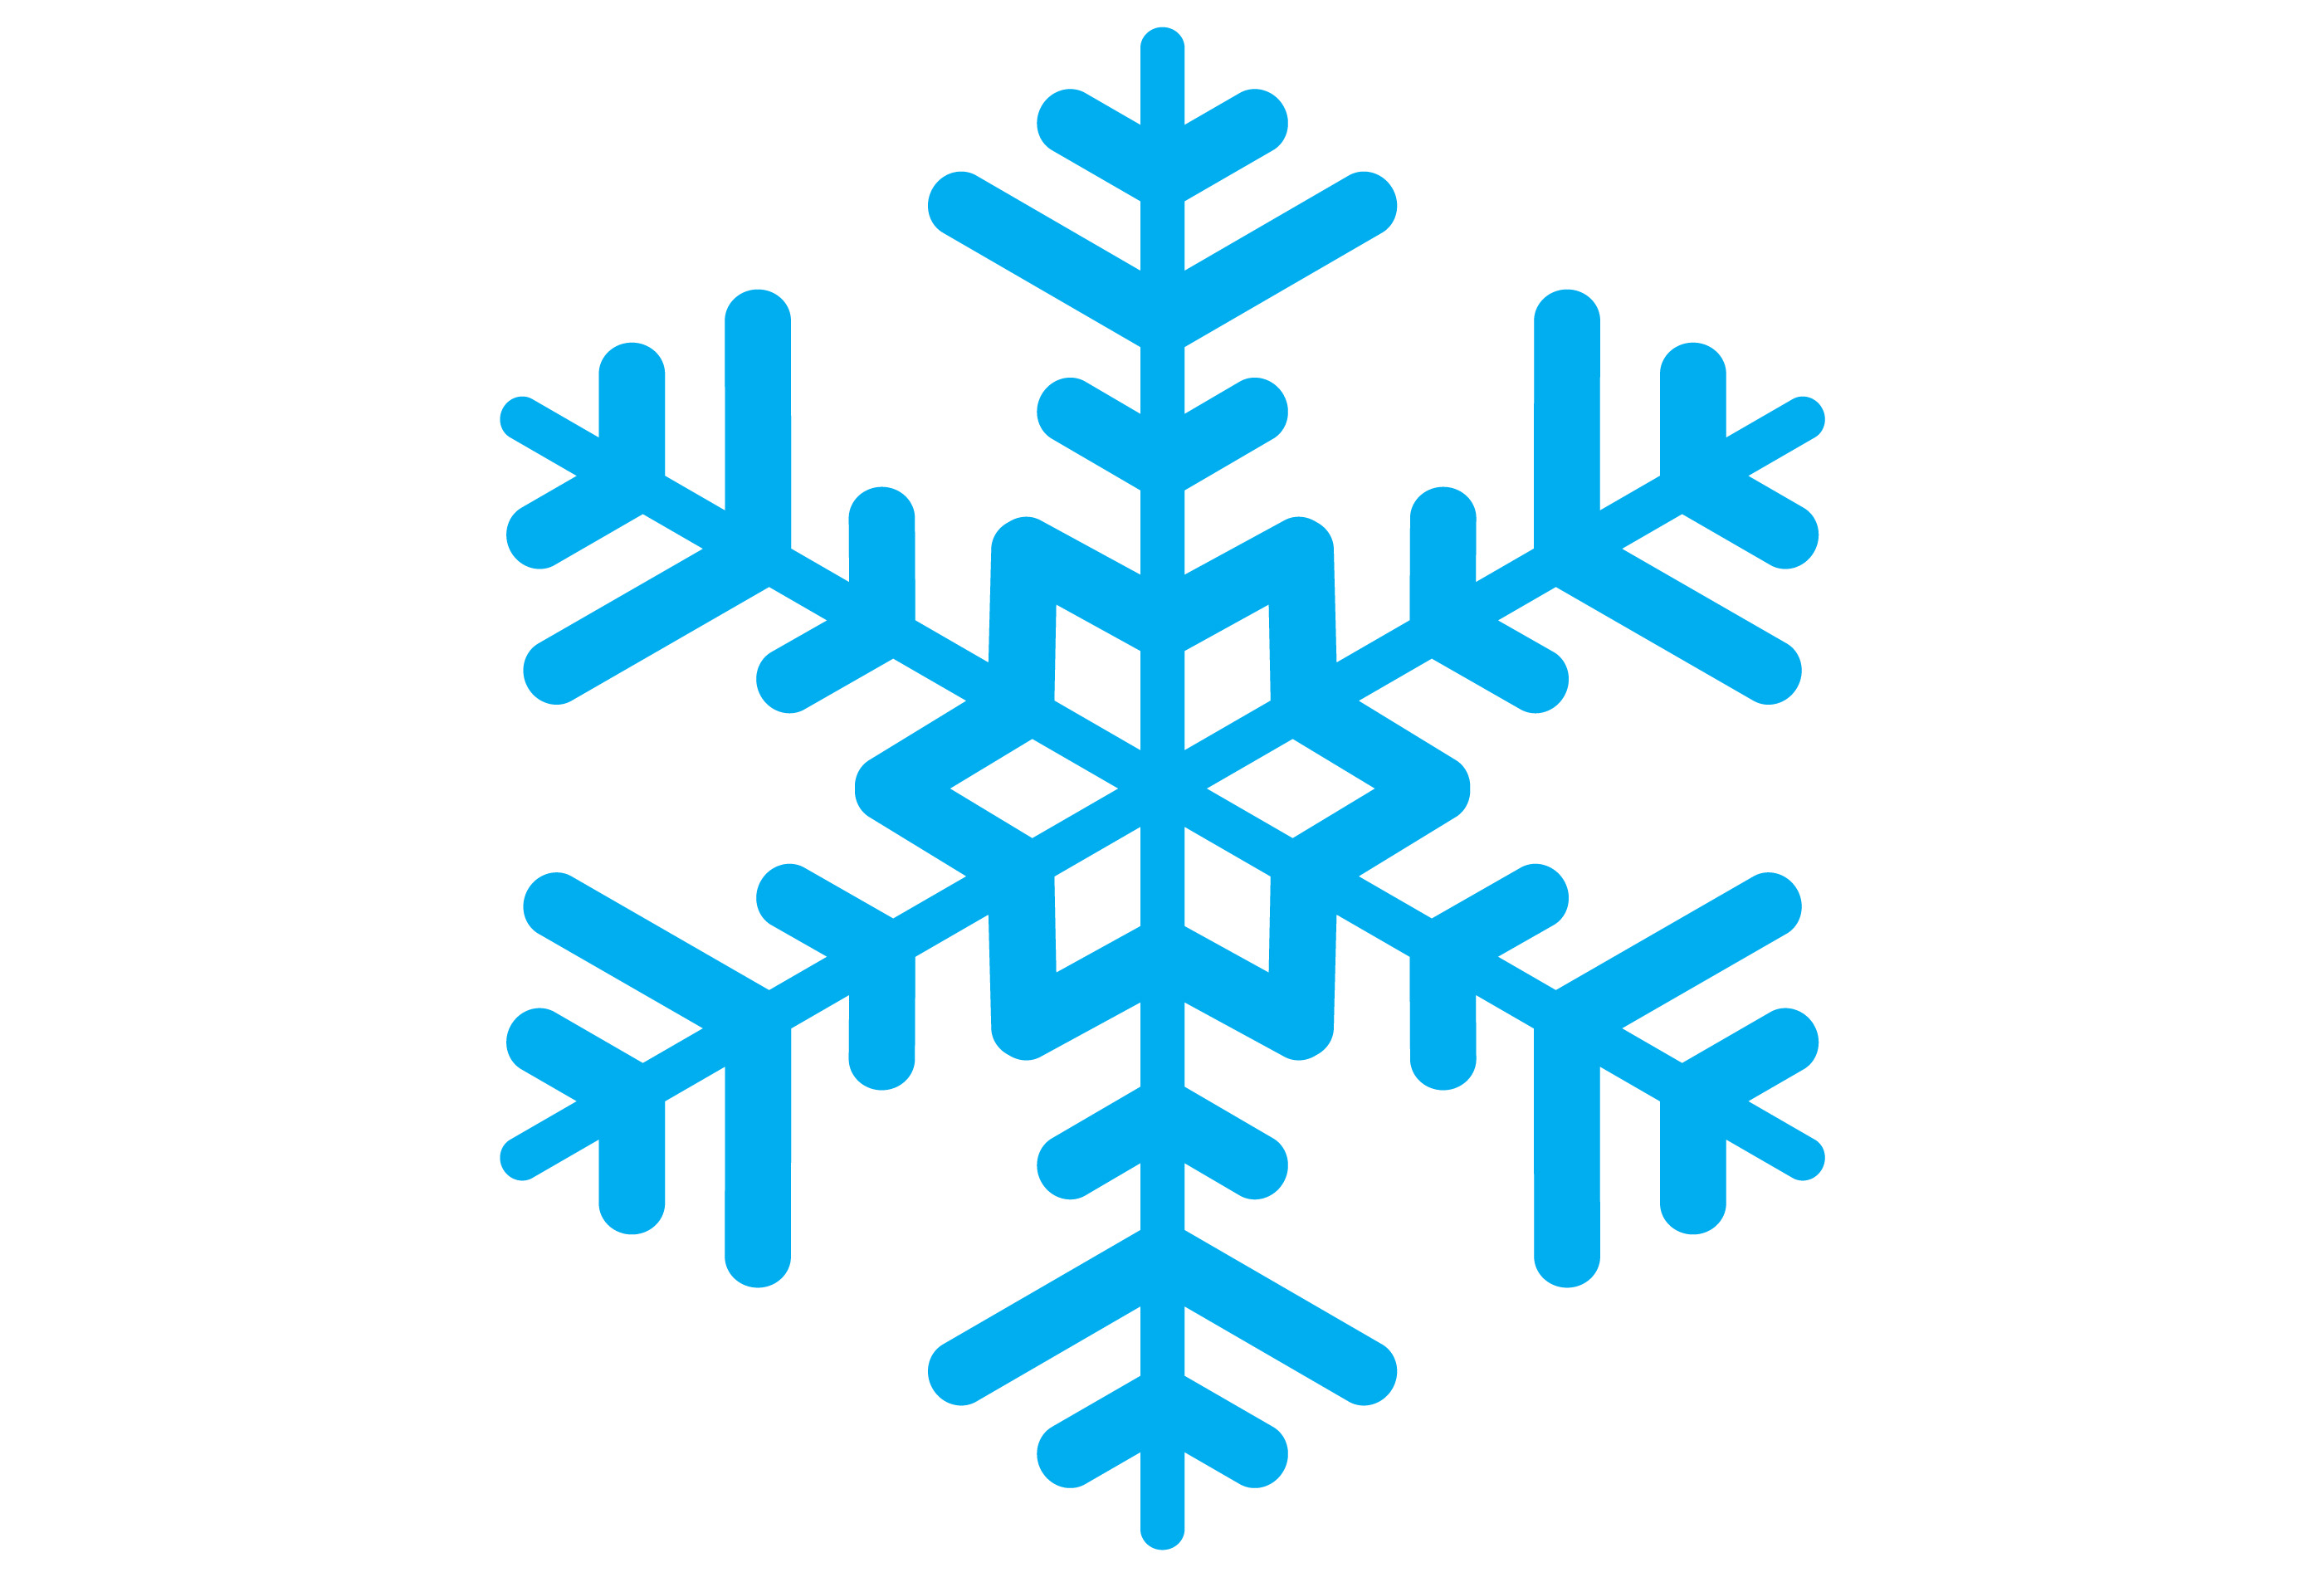 Snowglake clipart svg freeuse download Snowflake Clipart to free download – Free Clipart Images svg freeuse download